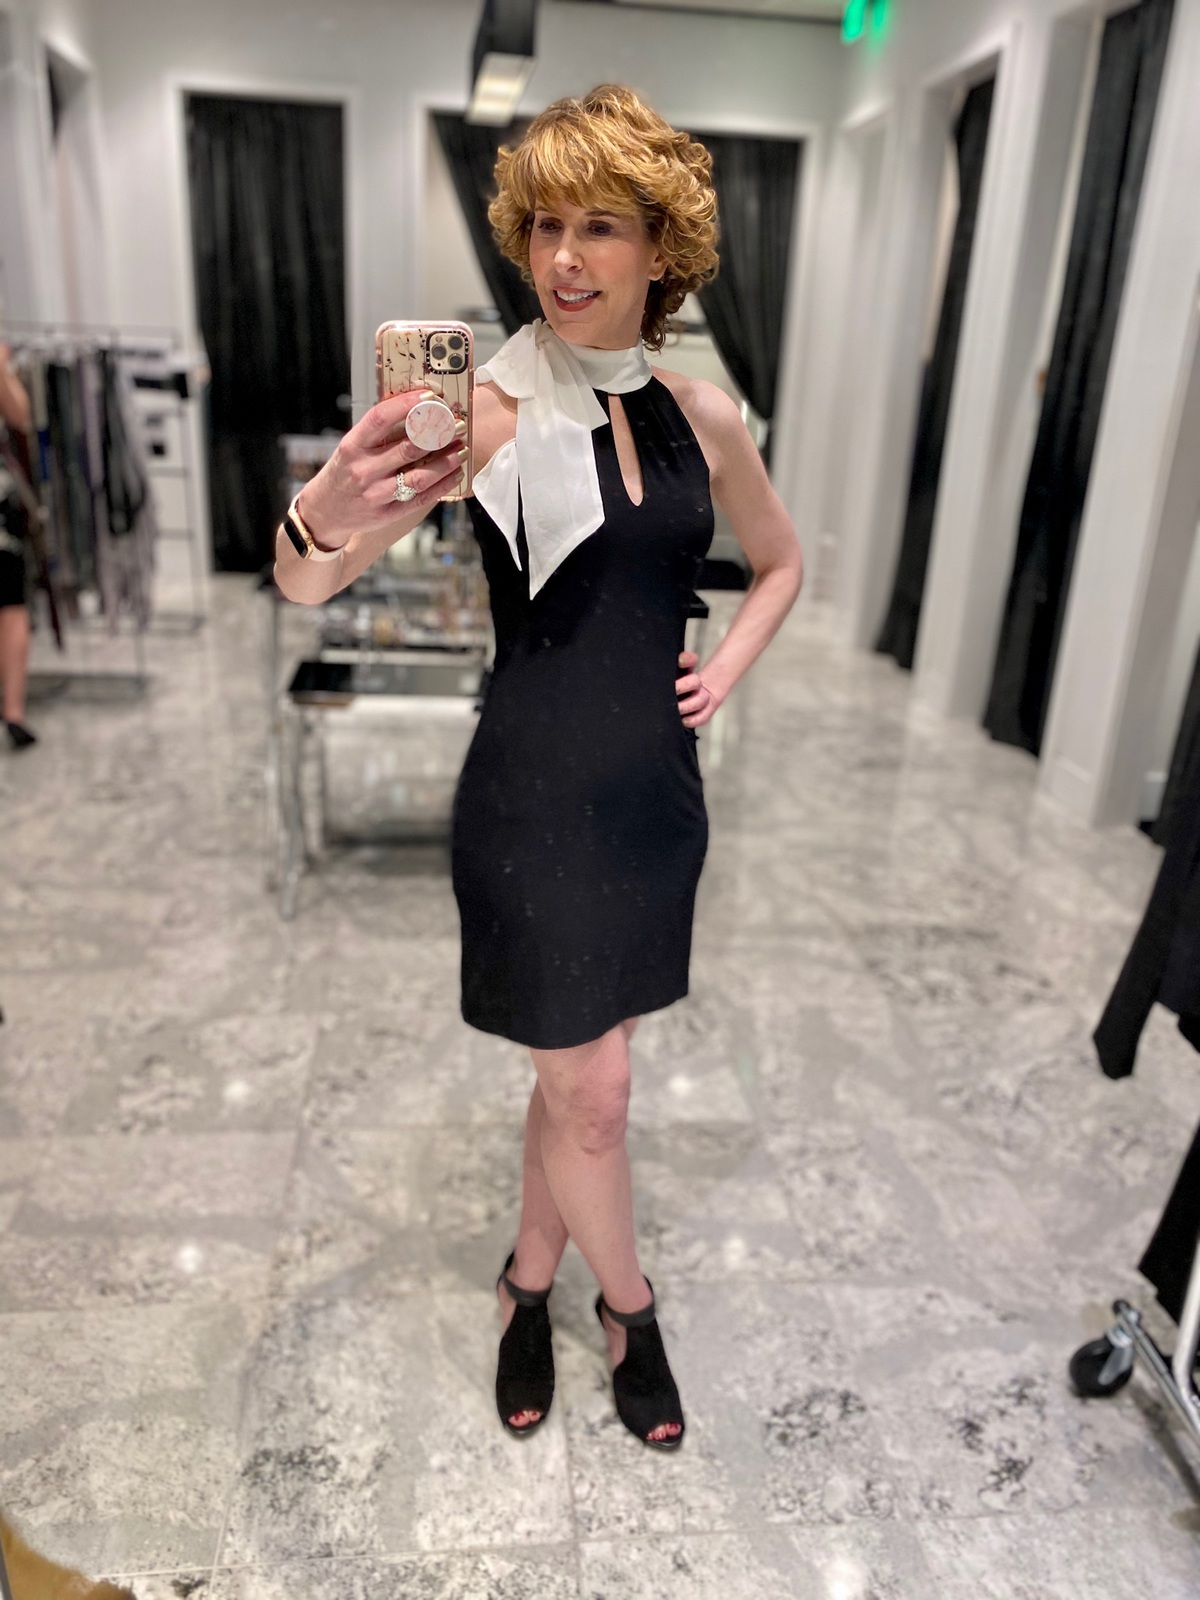 Mirror selfie of woman over 50 wearing a black dress with white bow at the neck